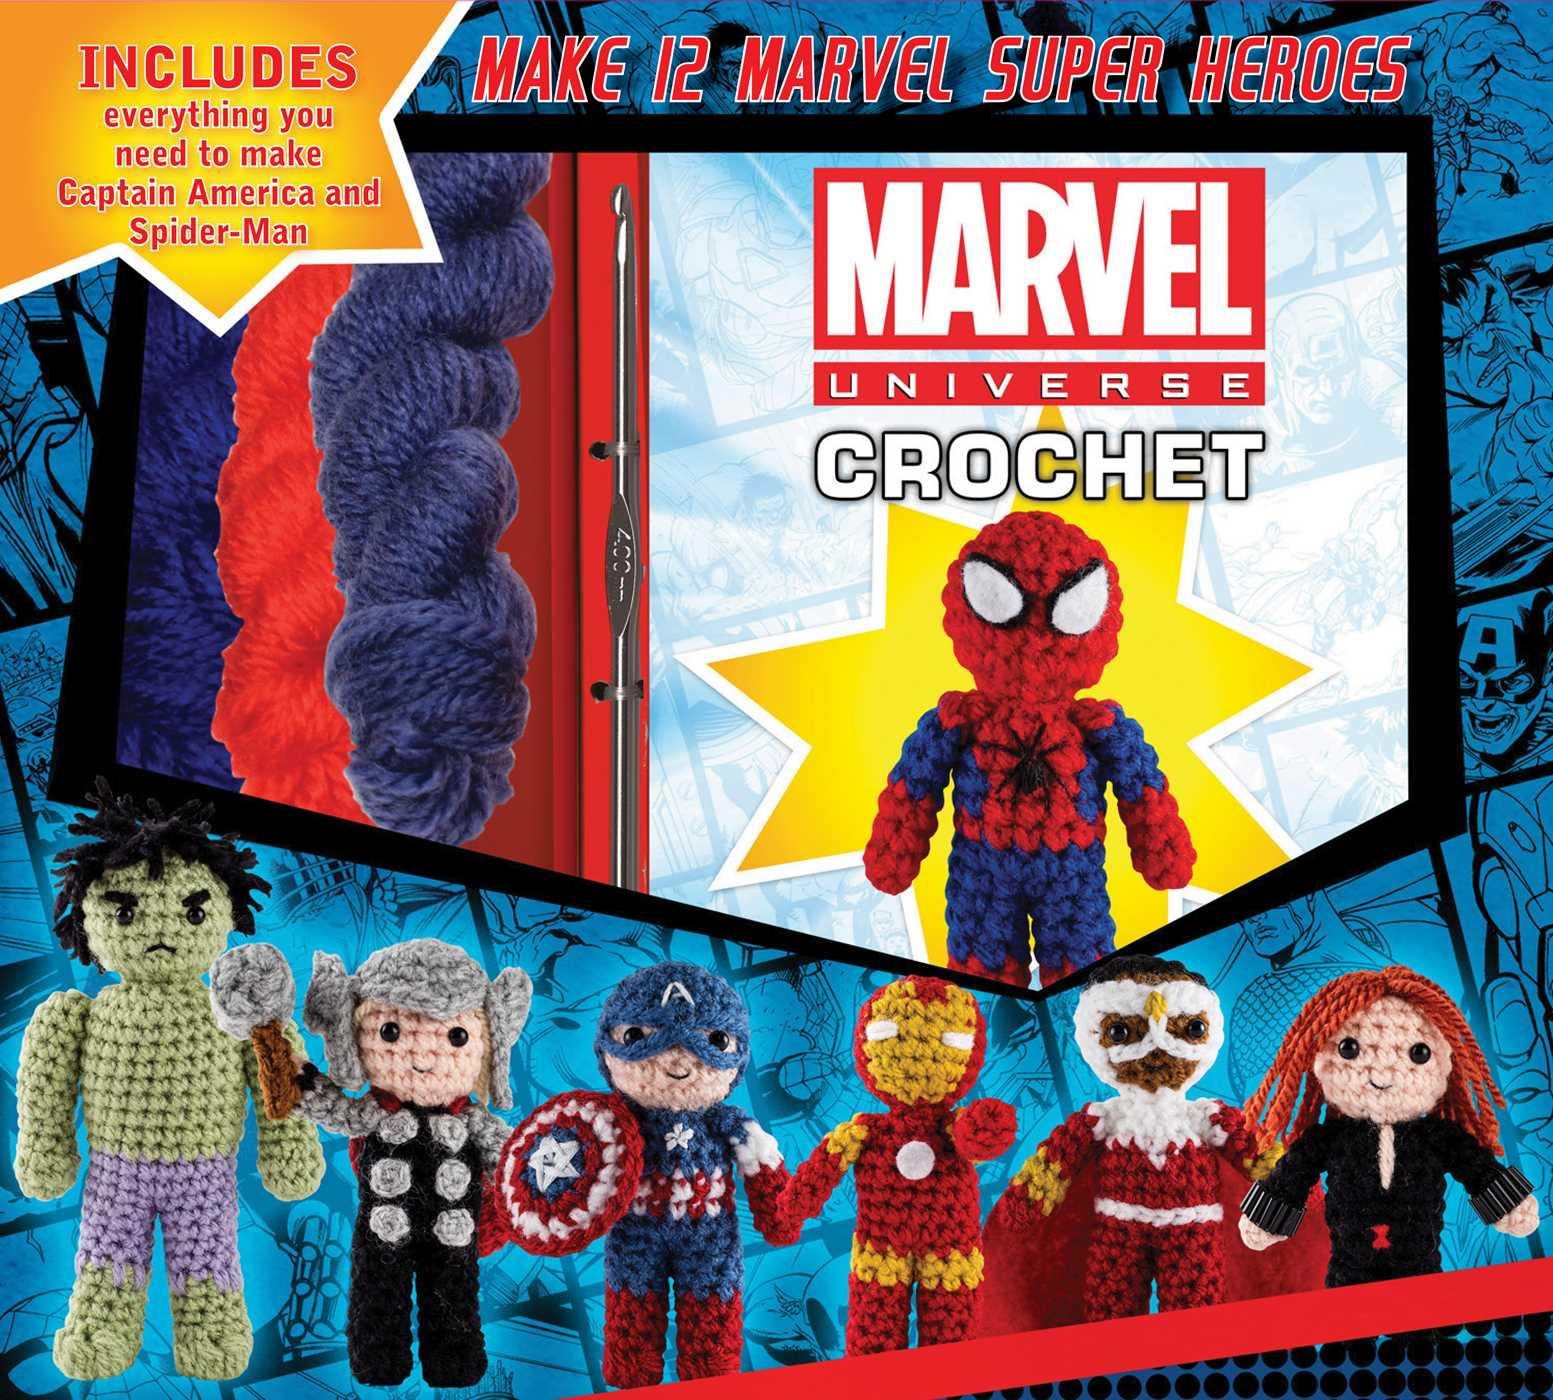 Crochet Kits: Marvel Universe Crochet (Other)